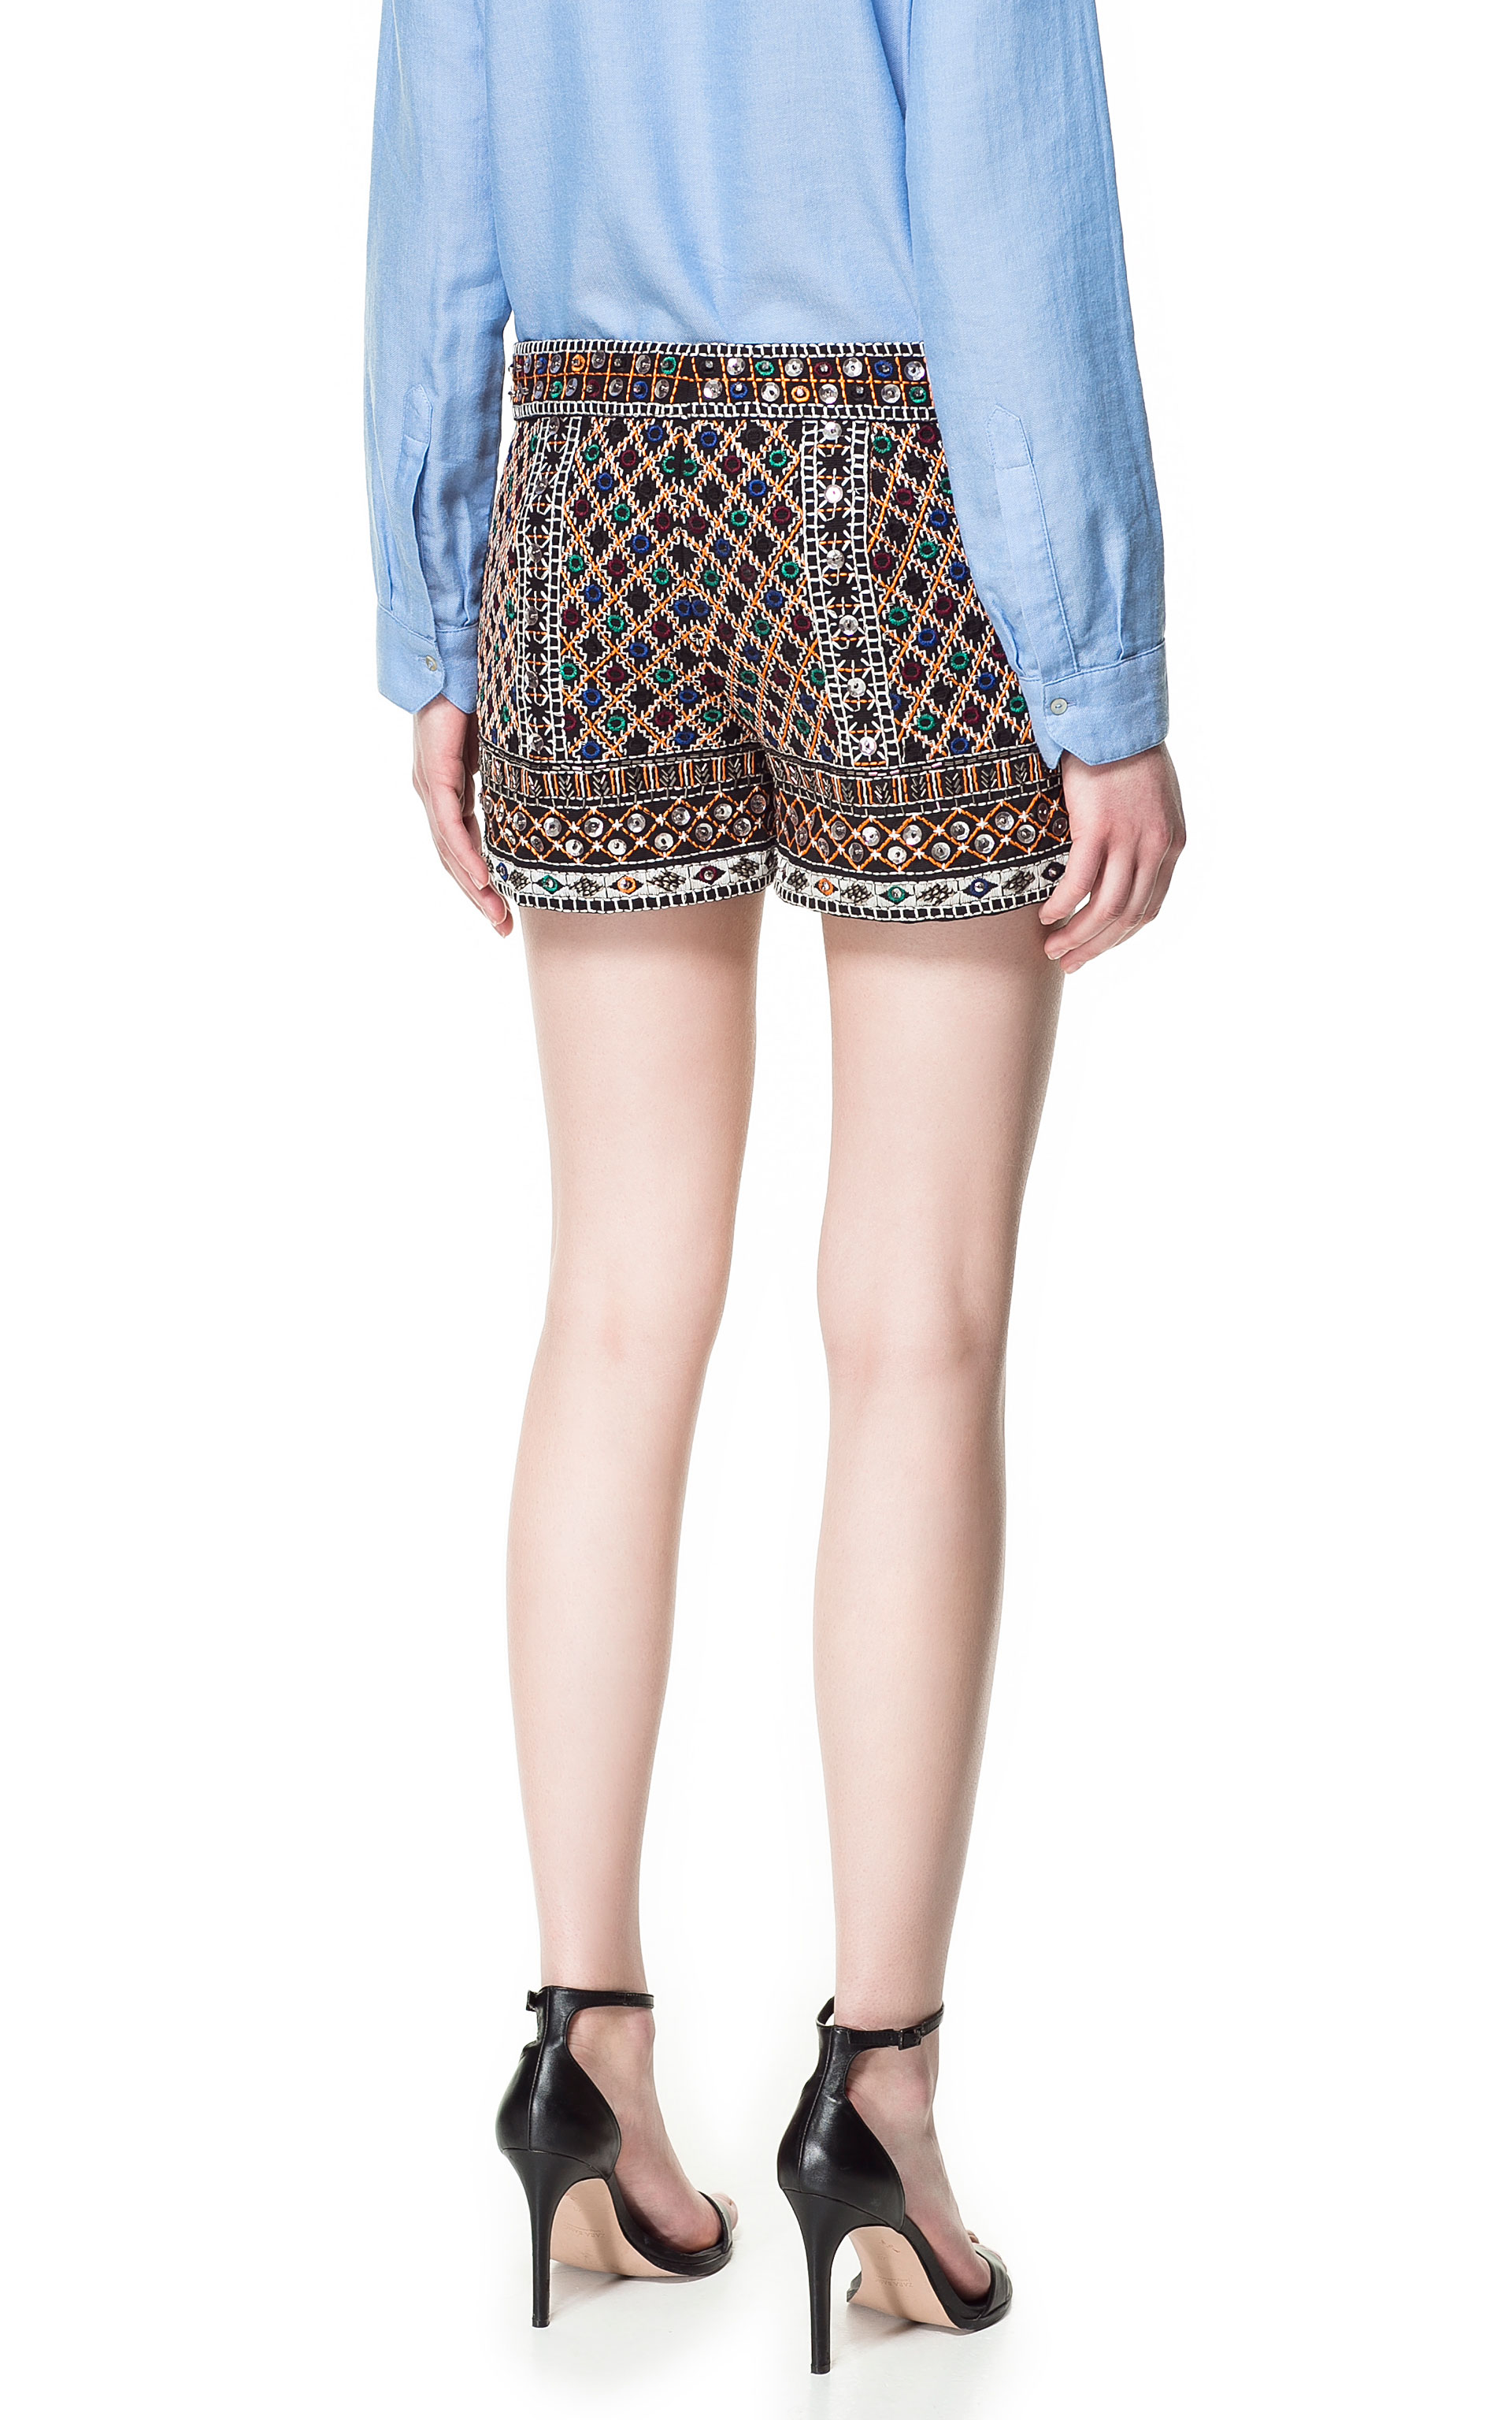 Zara embroidered shorts with stones in multicolor black